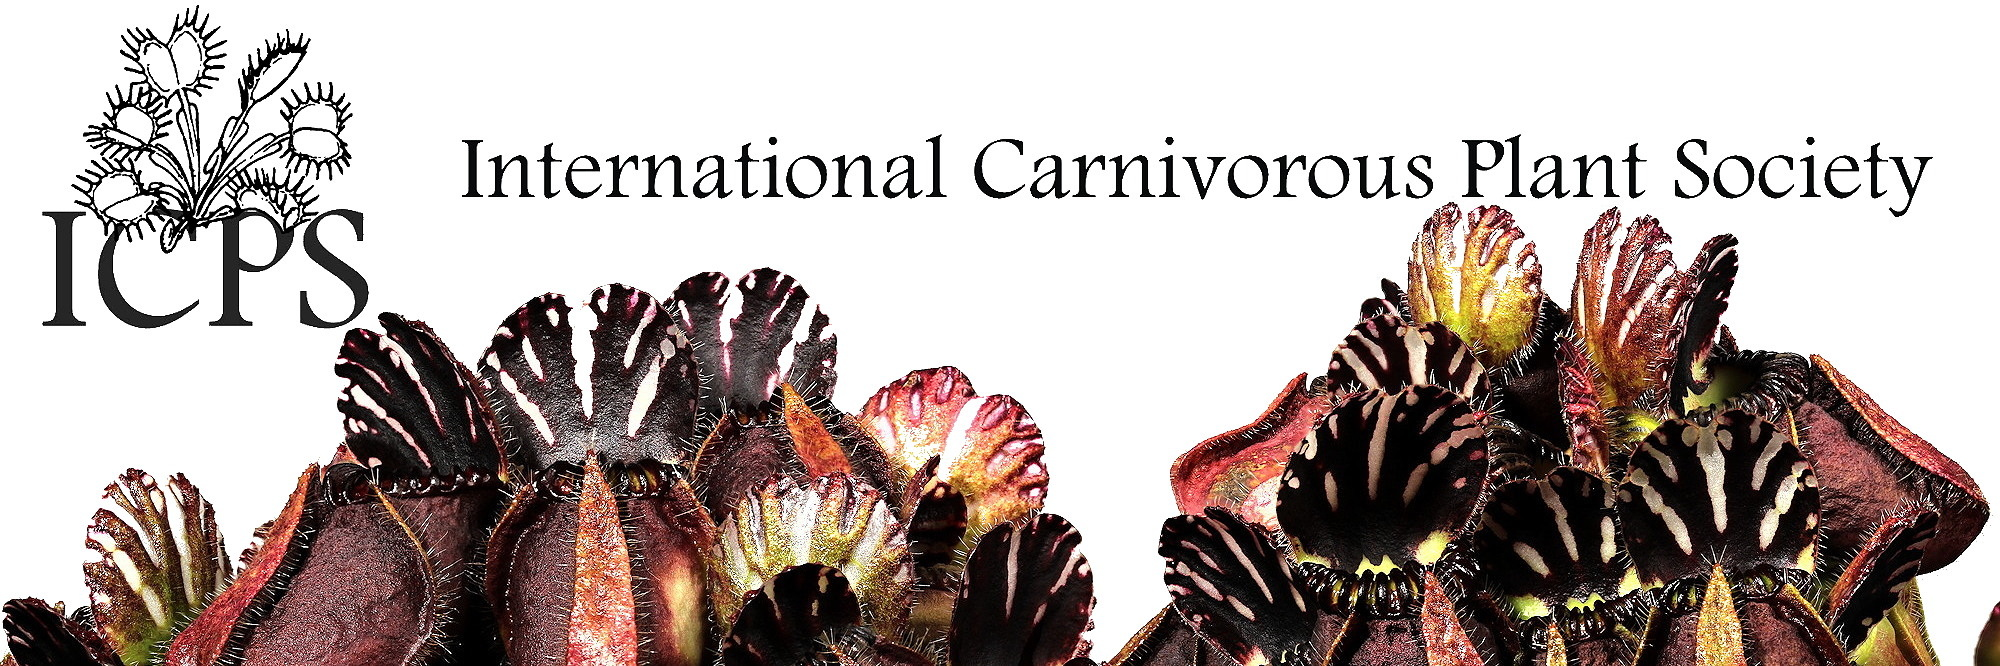 International Carnivorous Plant Society